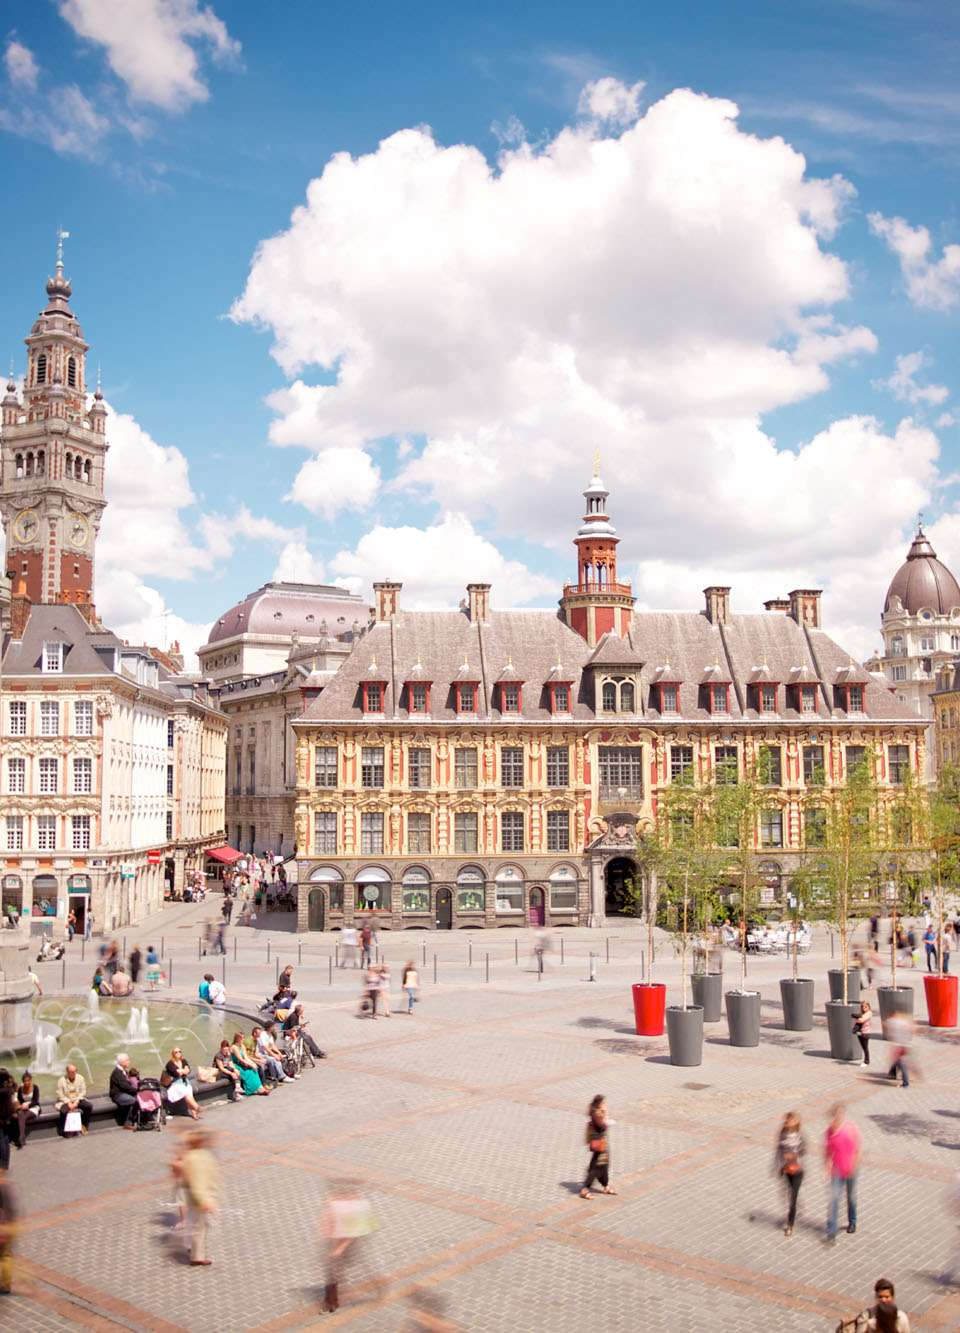 The main square in Lille, northern France